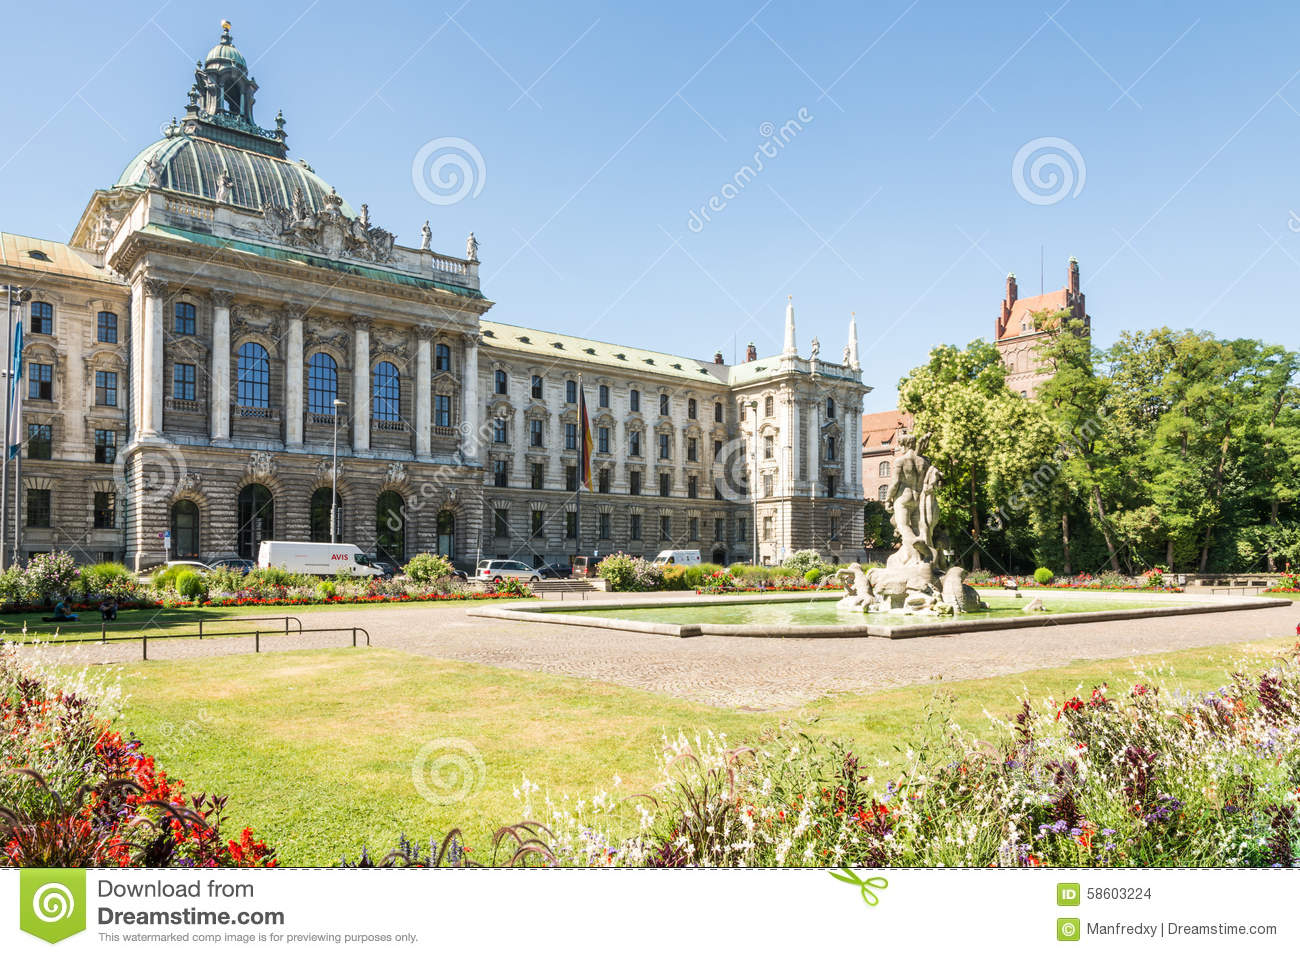 Alter Botanischer Garten And Palace Of Justice In Munich Editorial Stock Image Image of  ~ 10043327_Brunnen Alter Botanischer Garten München